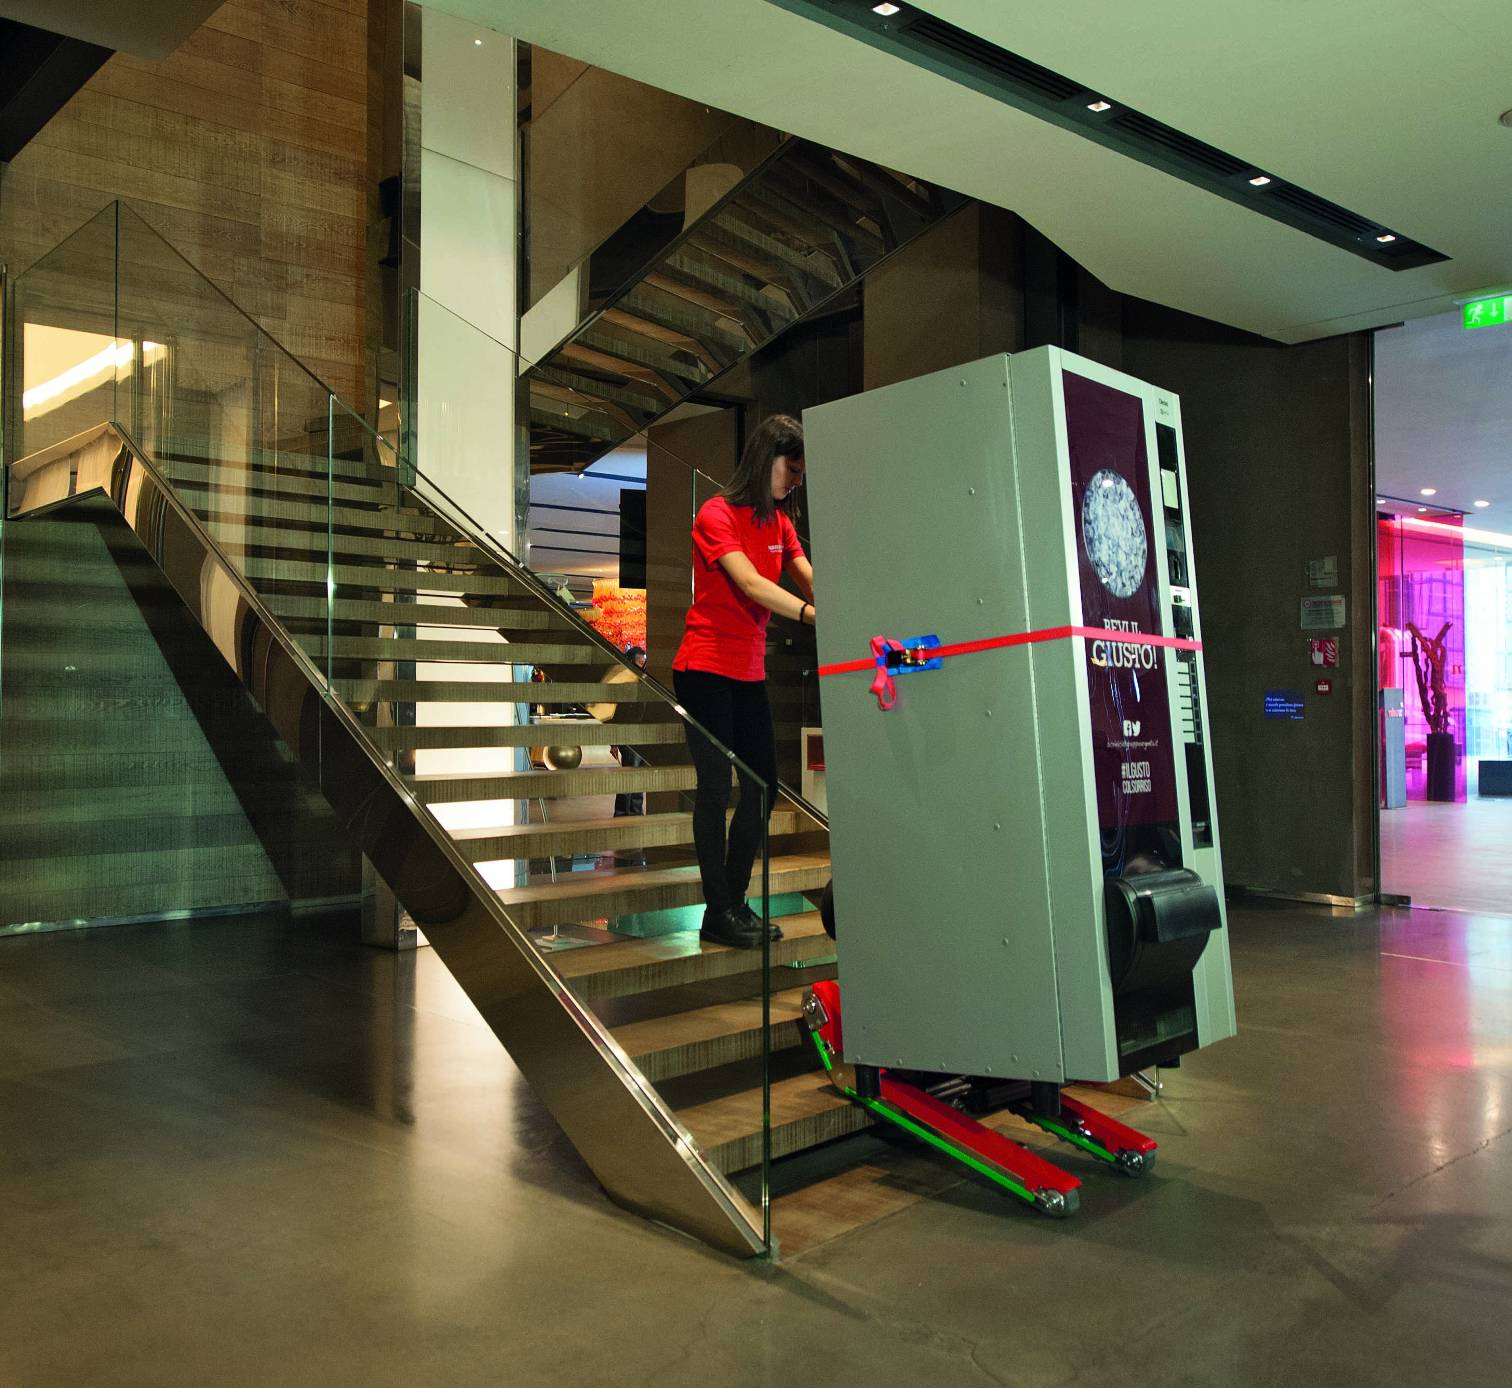 stairclimbing-trolley-domino-automatic-vending-machine-zonzini-4